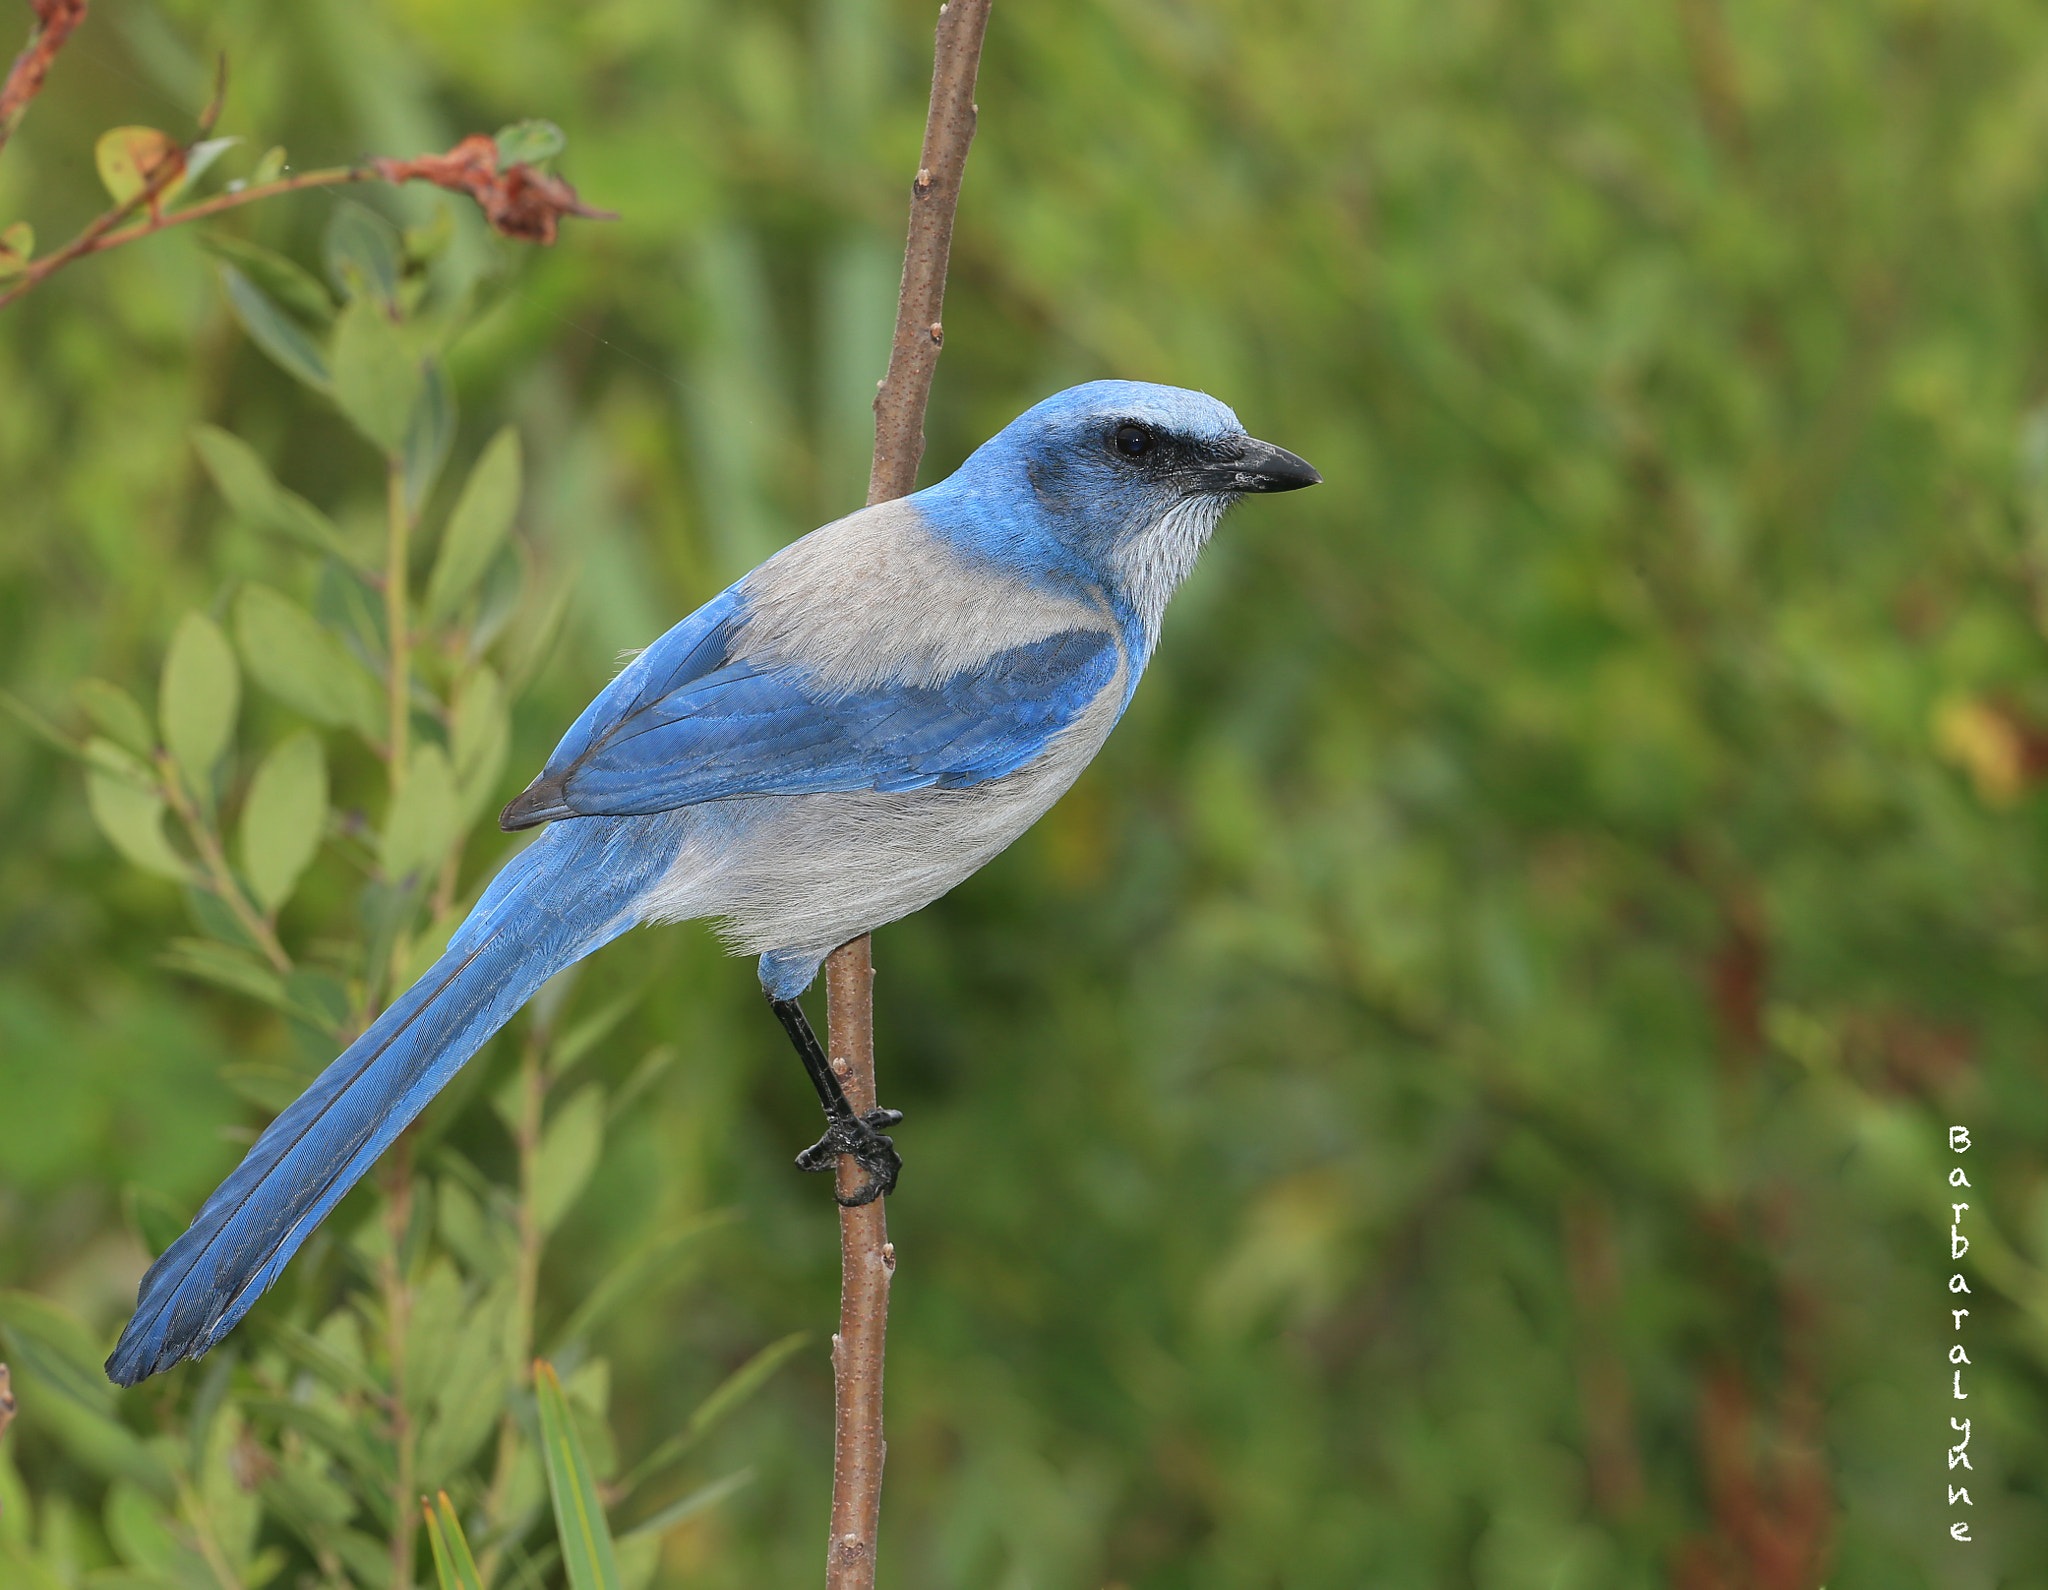 Photograph Endangered Florida Scrub Jay  by Barb D'Arpino on 500px